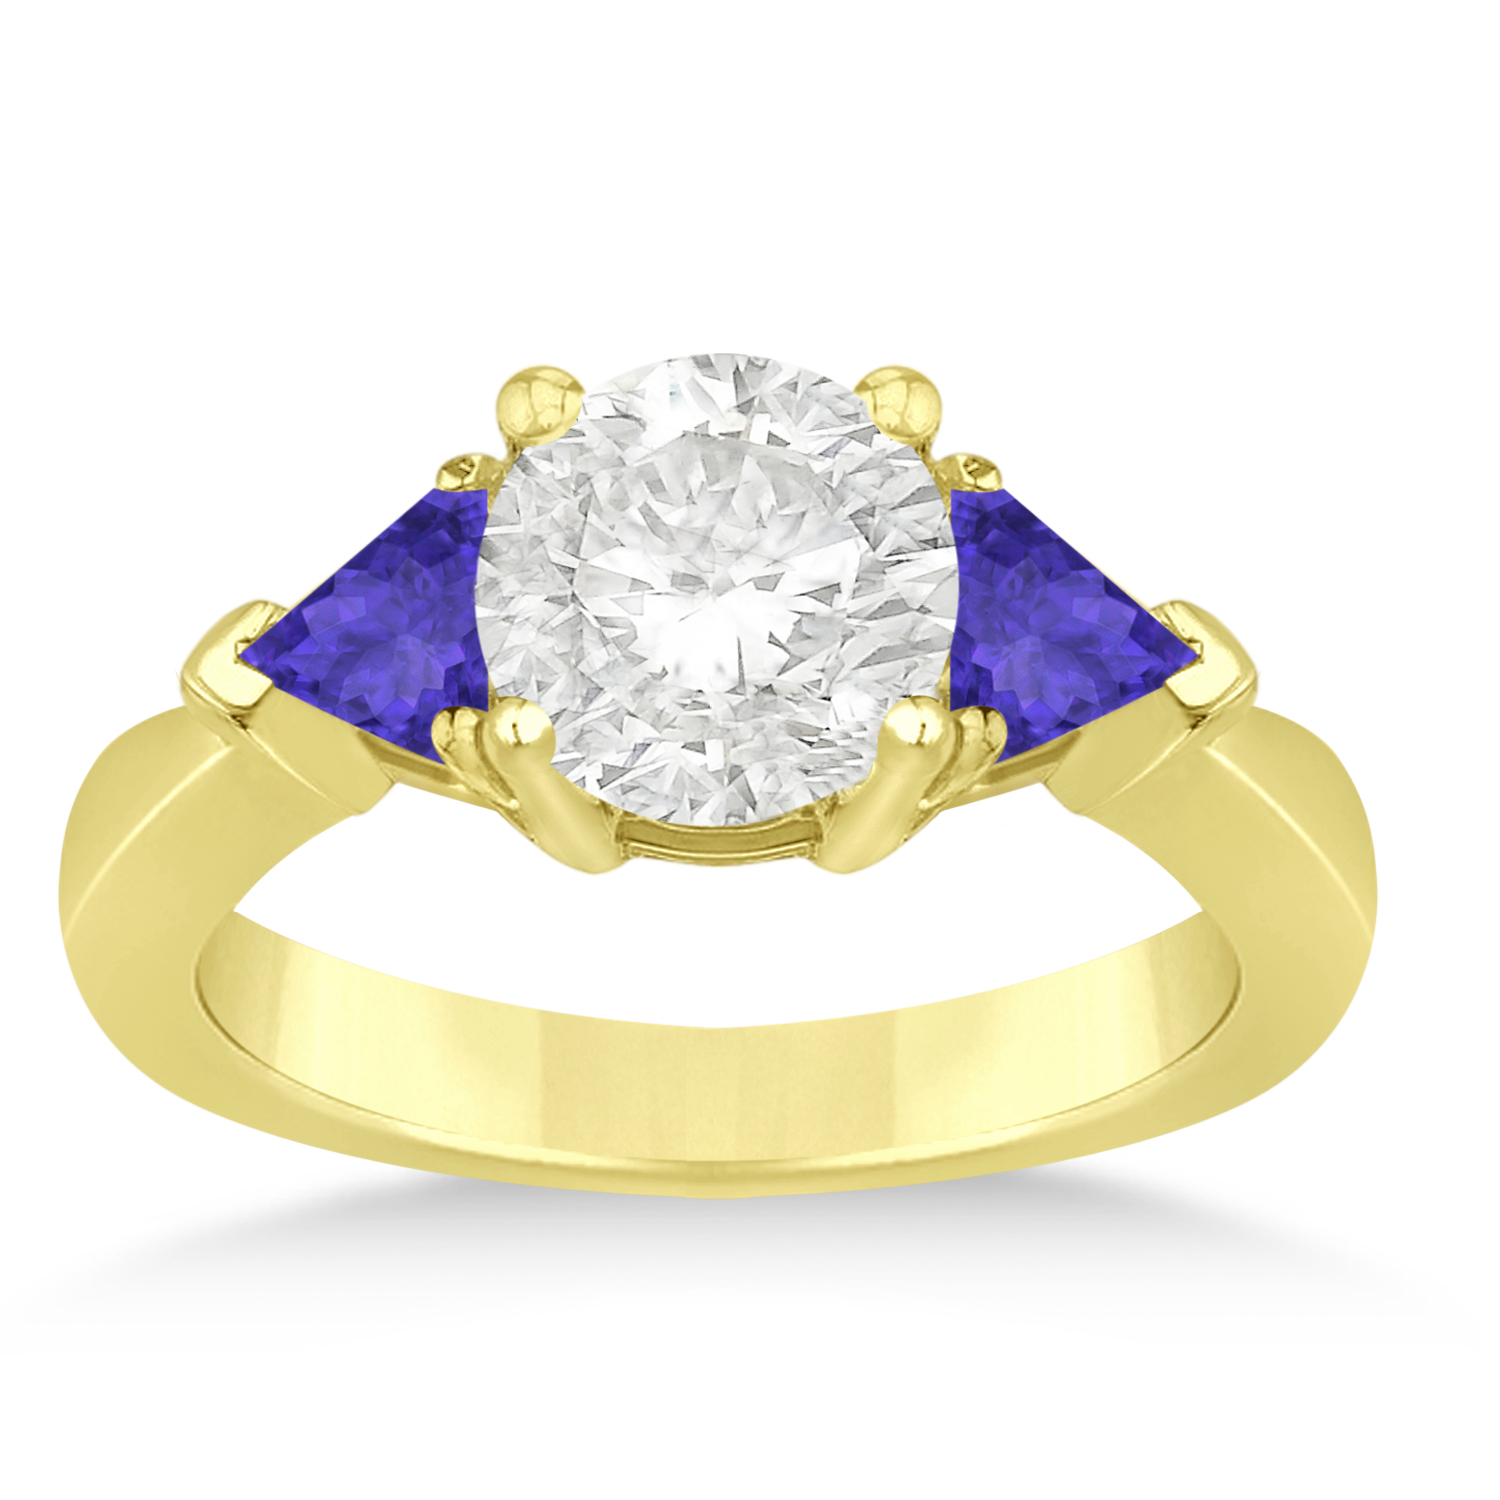 ct undefined wholesale bjs gold recipeid tanzanite tw trillion carat white cut close diamond imageservice id ring club in product round profileid and